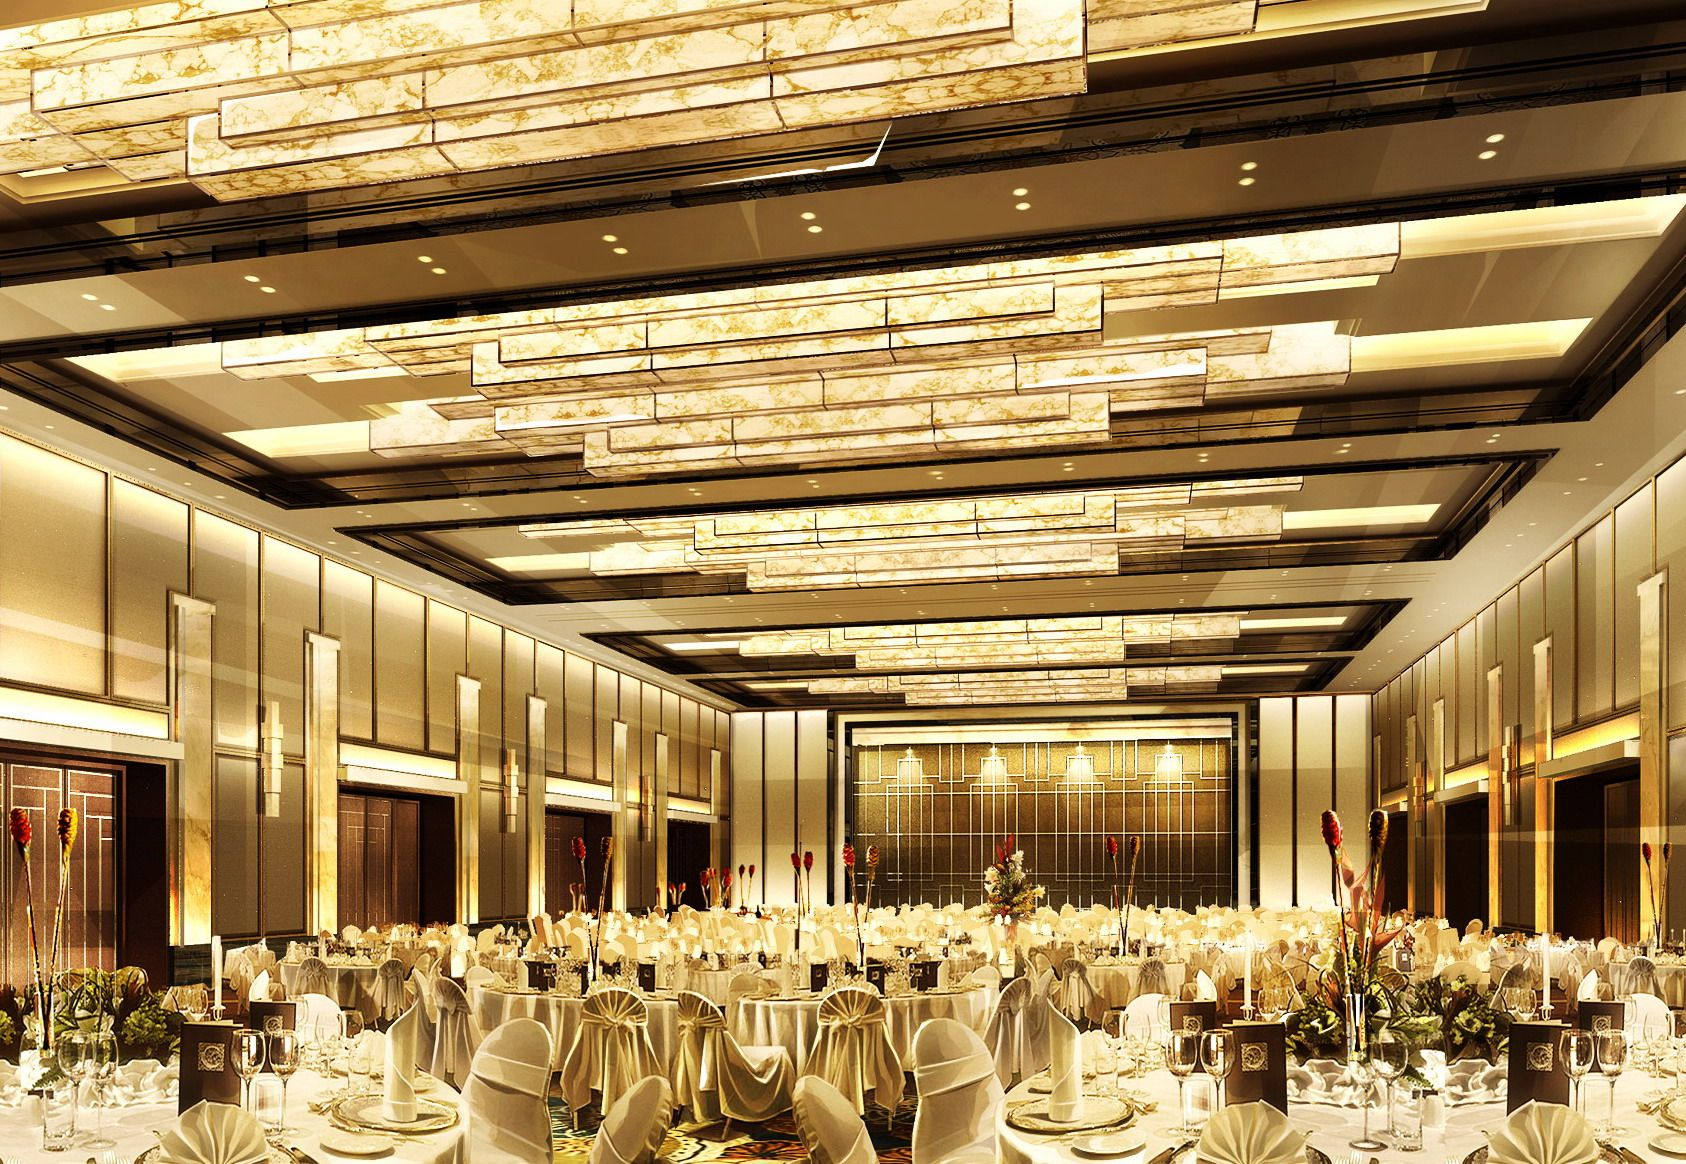 Ballroom Ballroom Ceiling Design According The Size Of